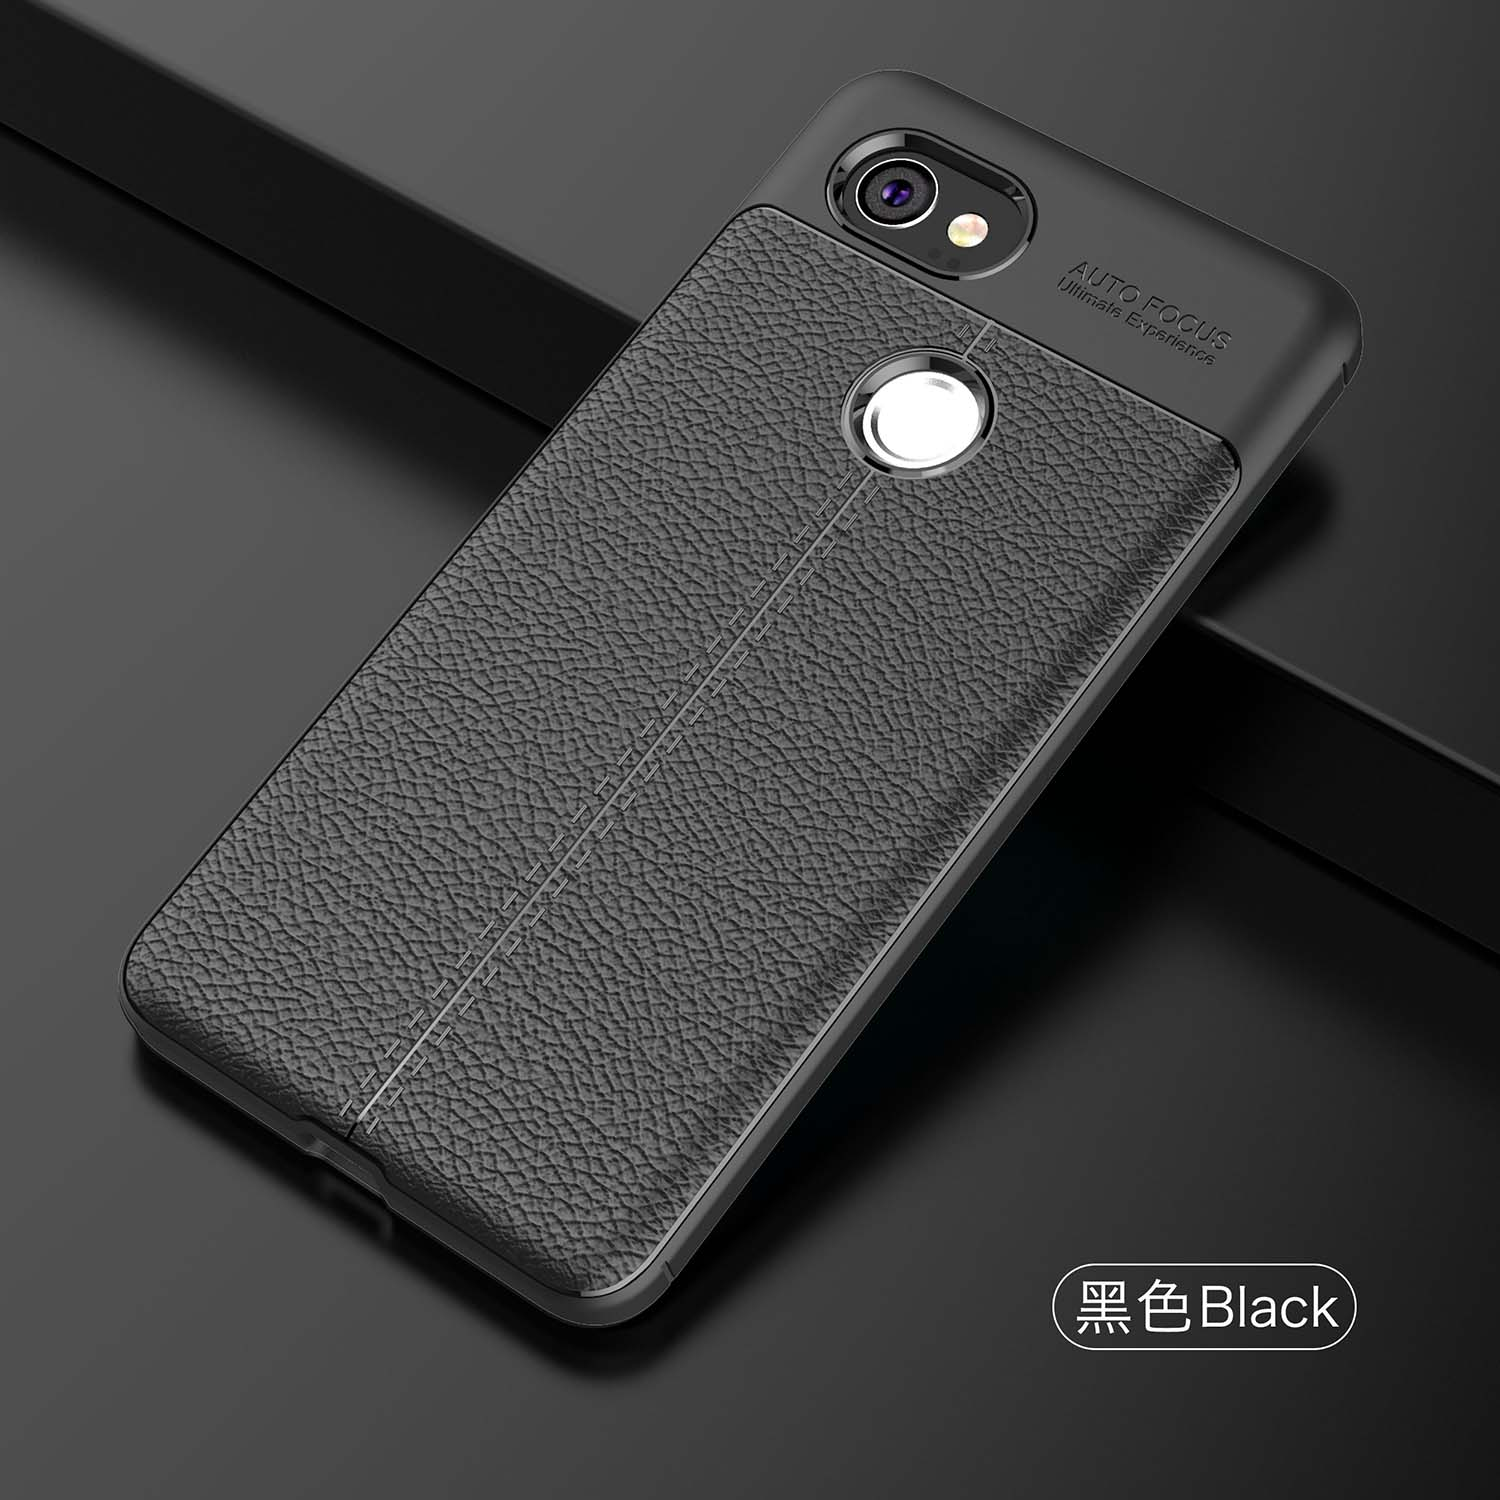 Soft TPU Case For Google Pixel XL 2 Case Leather Texture Silicone Phone Cover For Google Pixel XL 2 Business Coque 6.0